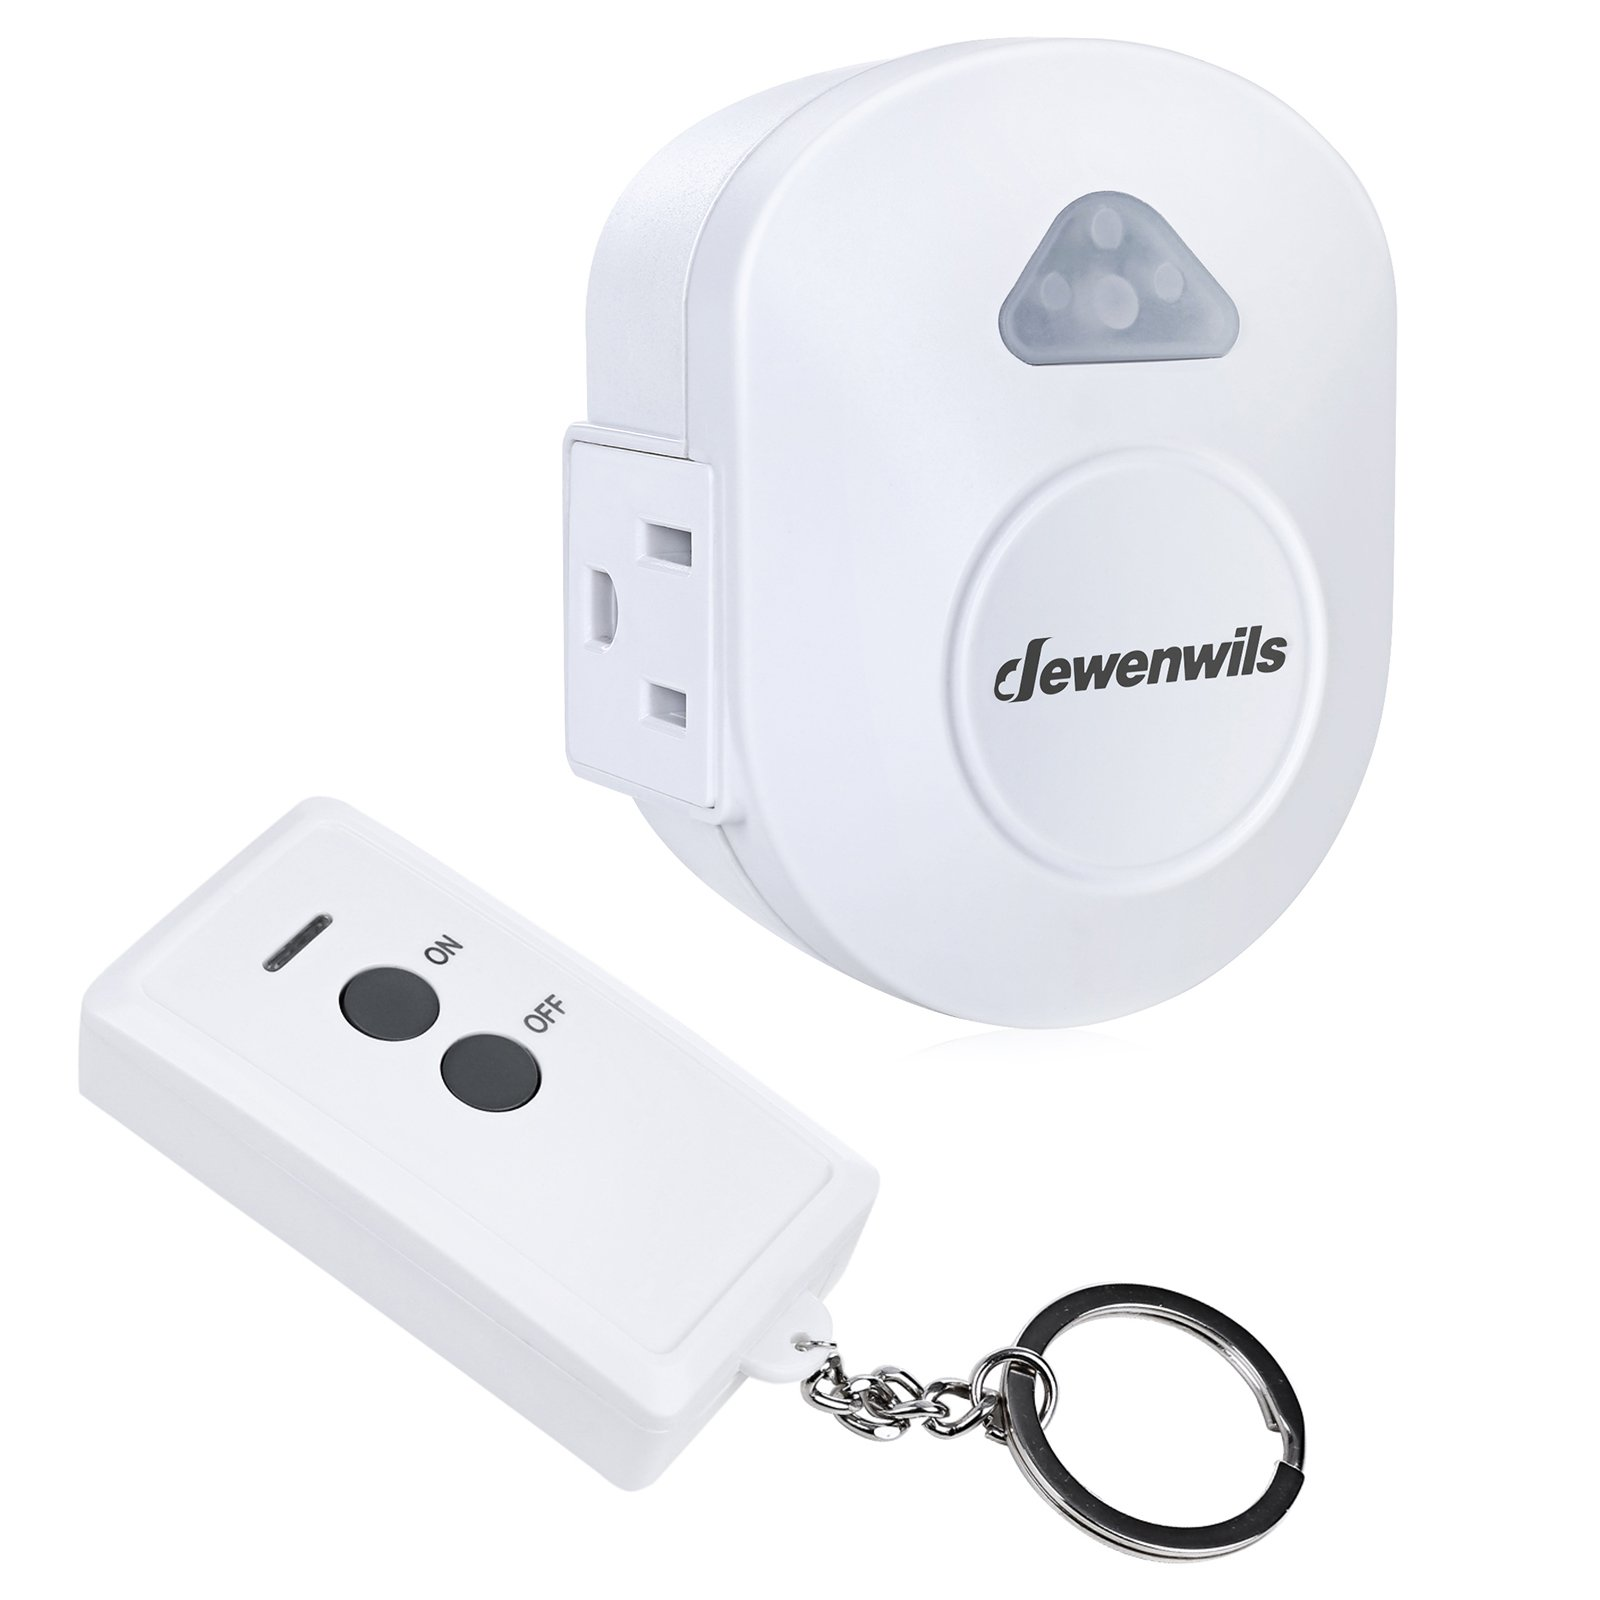 DEWENWILS Wireless Remote Control Electrical Outlet Switch, RF Remote Control ON OFF Light Switch Kit, No Interference, 15 AMP Heavy Duty, 100 FT Range, Compact Side Plug by DEWENWILS